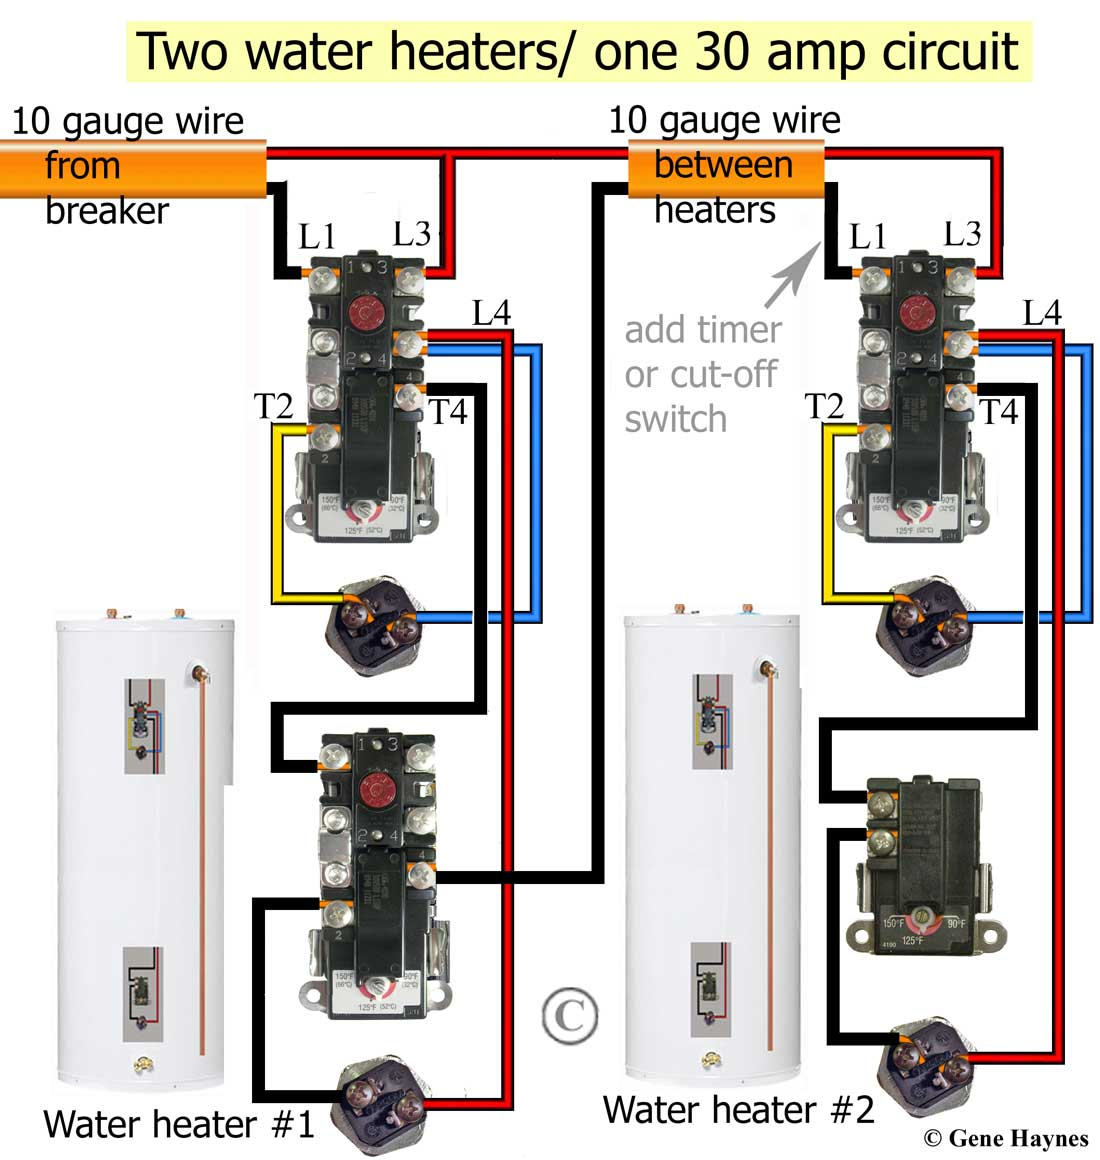 how to wire water heater thermostats water heater 220 volt wiring diagram larger image, non simultaneous thermostats control 2 water heaters simultaneous wiring will heat top of tank first redundant will turn on as soon as cold